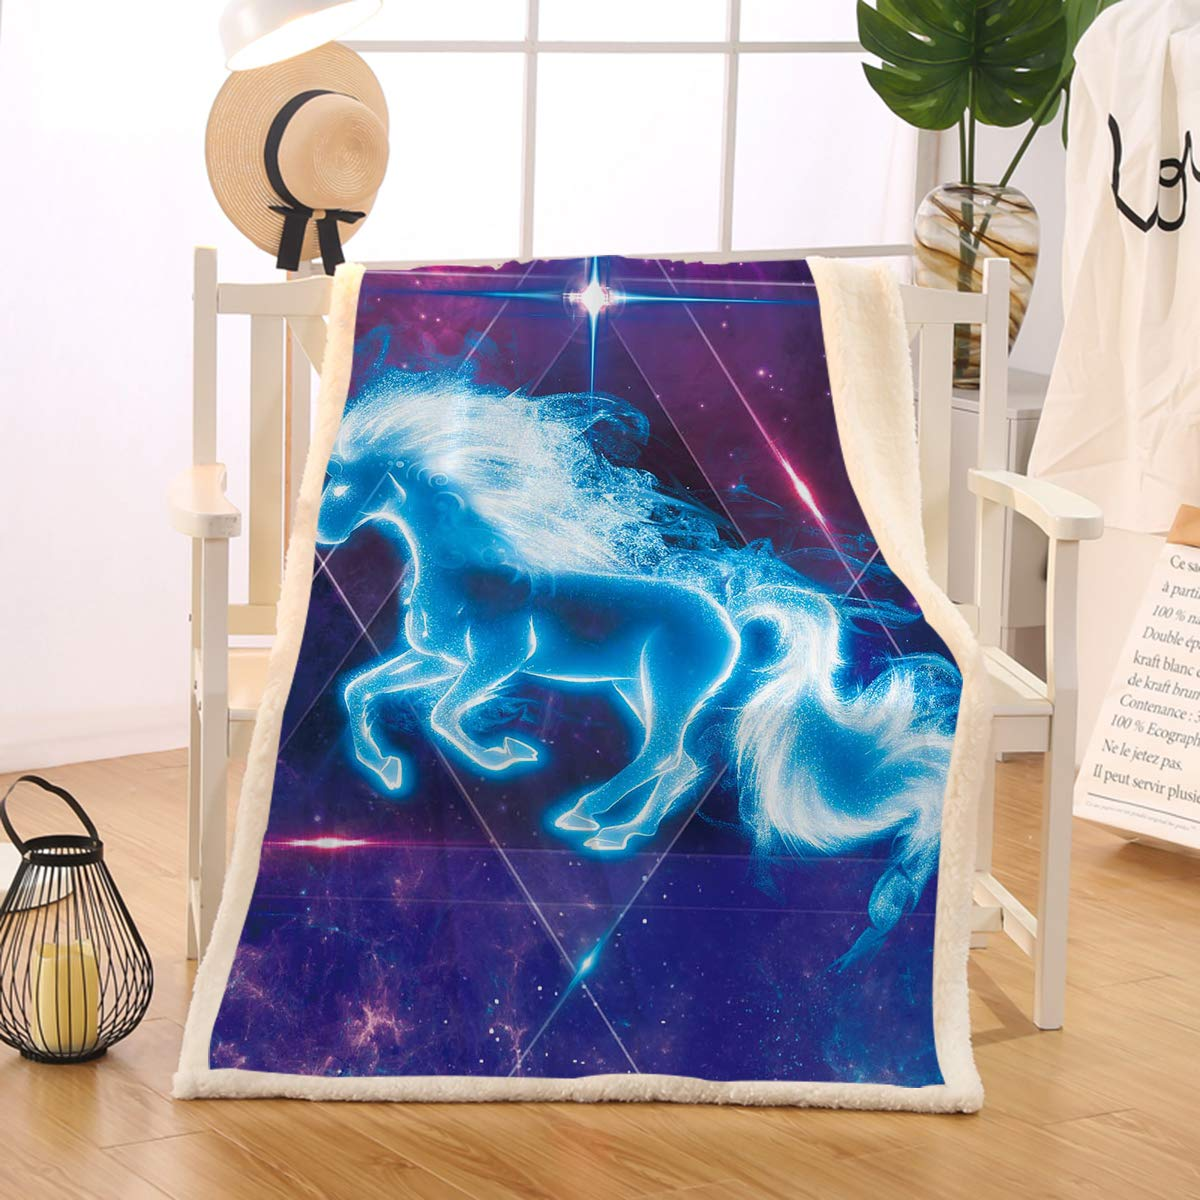 BlessLiving Unicorn Blanket for Girls Boys Kids Blue Purple Galaxy Bed Sofa Soft Throw Blanket Reversible Sherpa Fleece Blanket (Twin, 60 x 80 Inches) by BlessLiving